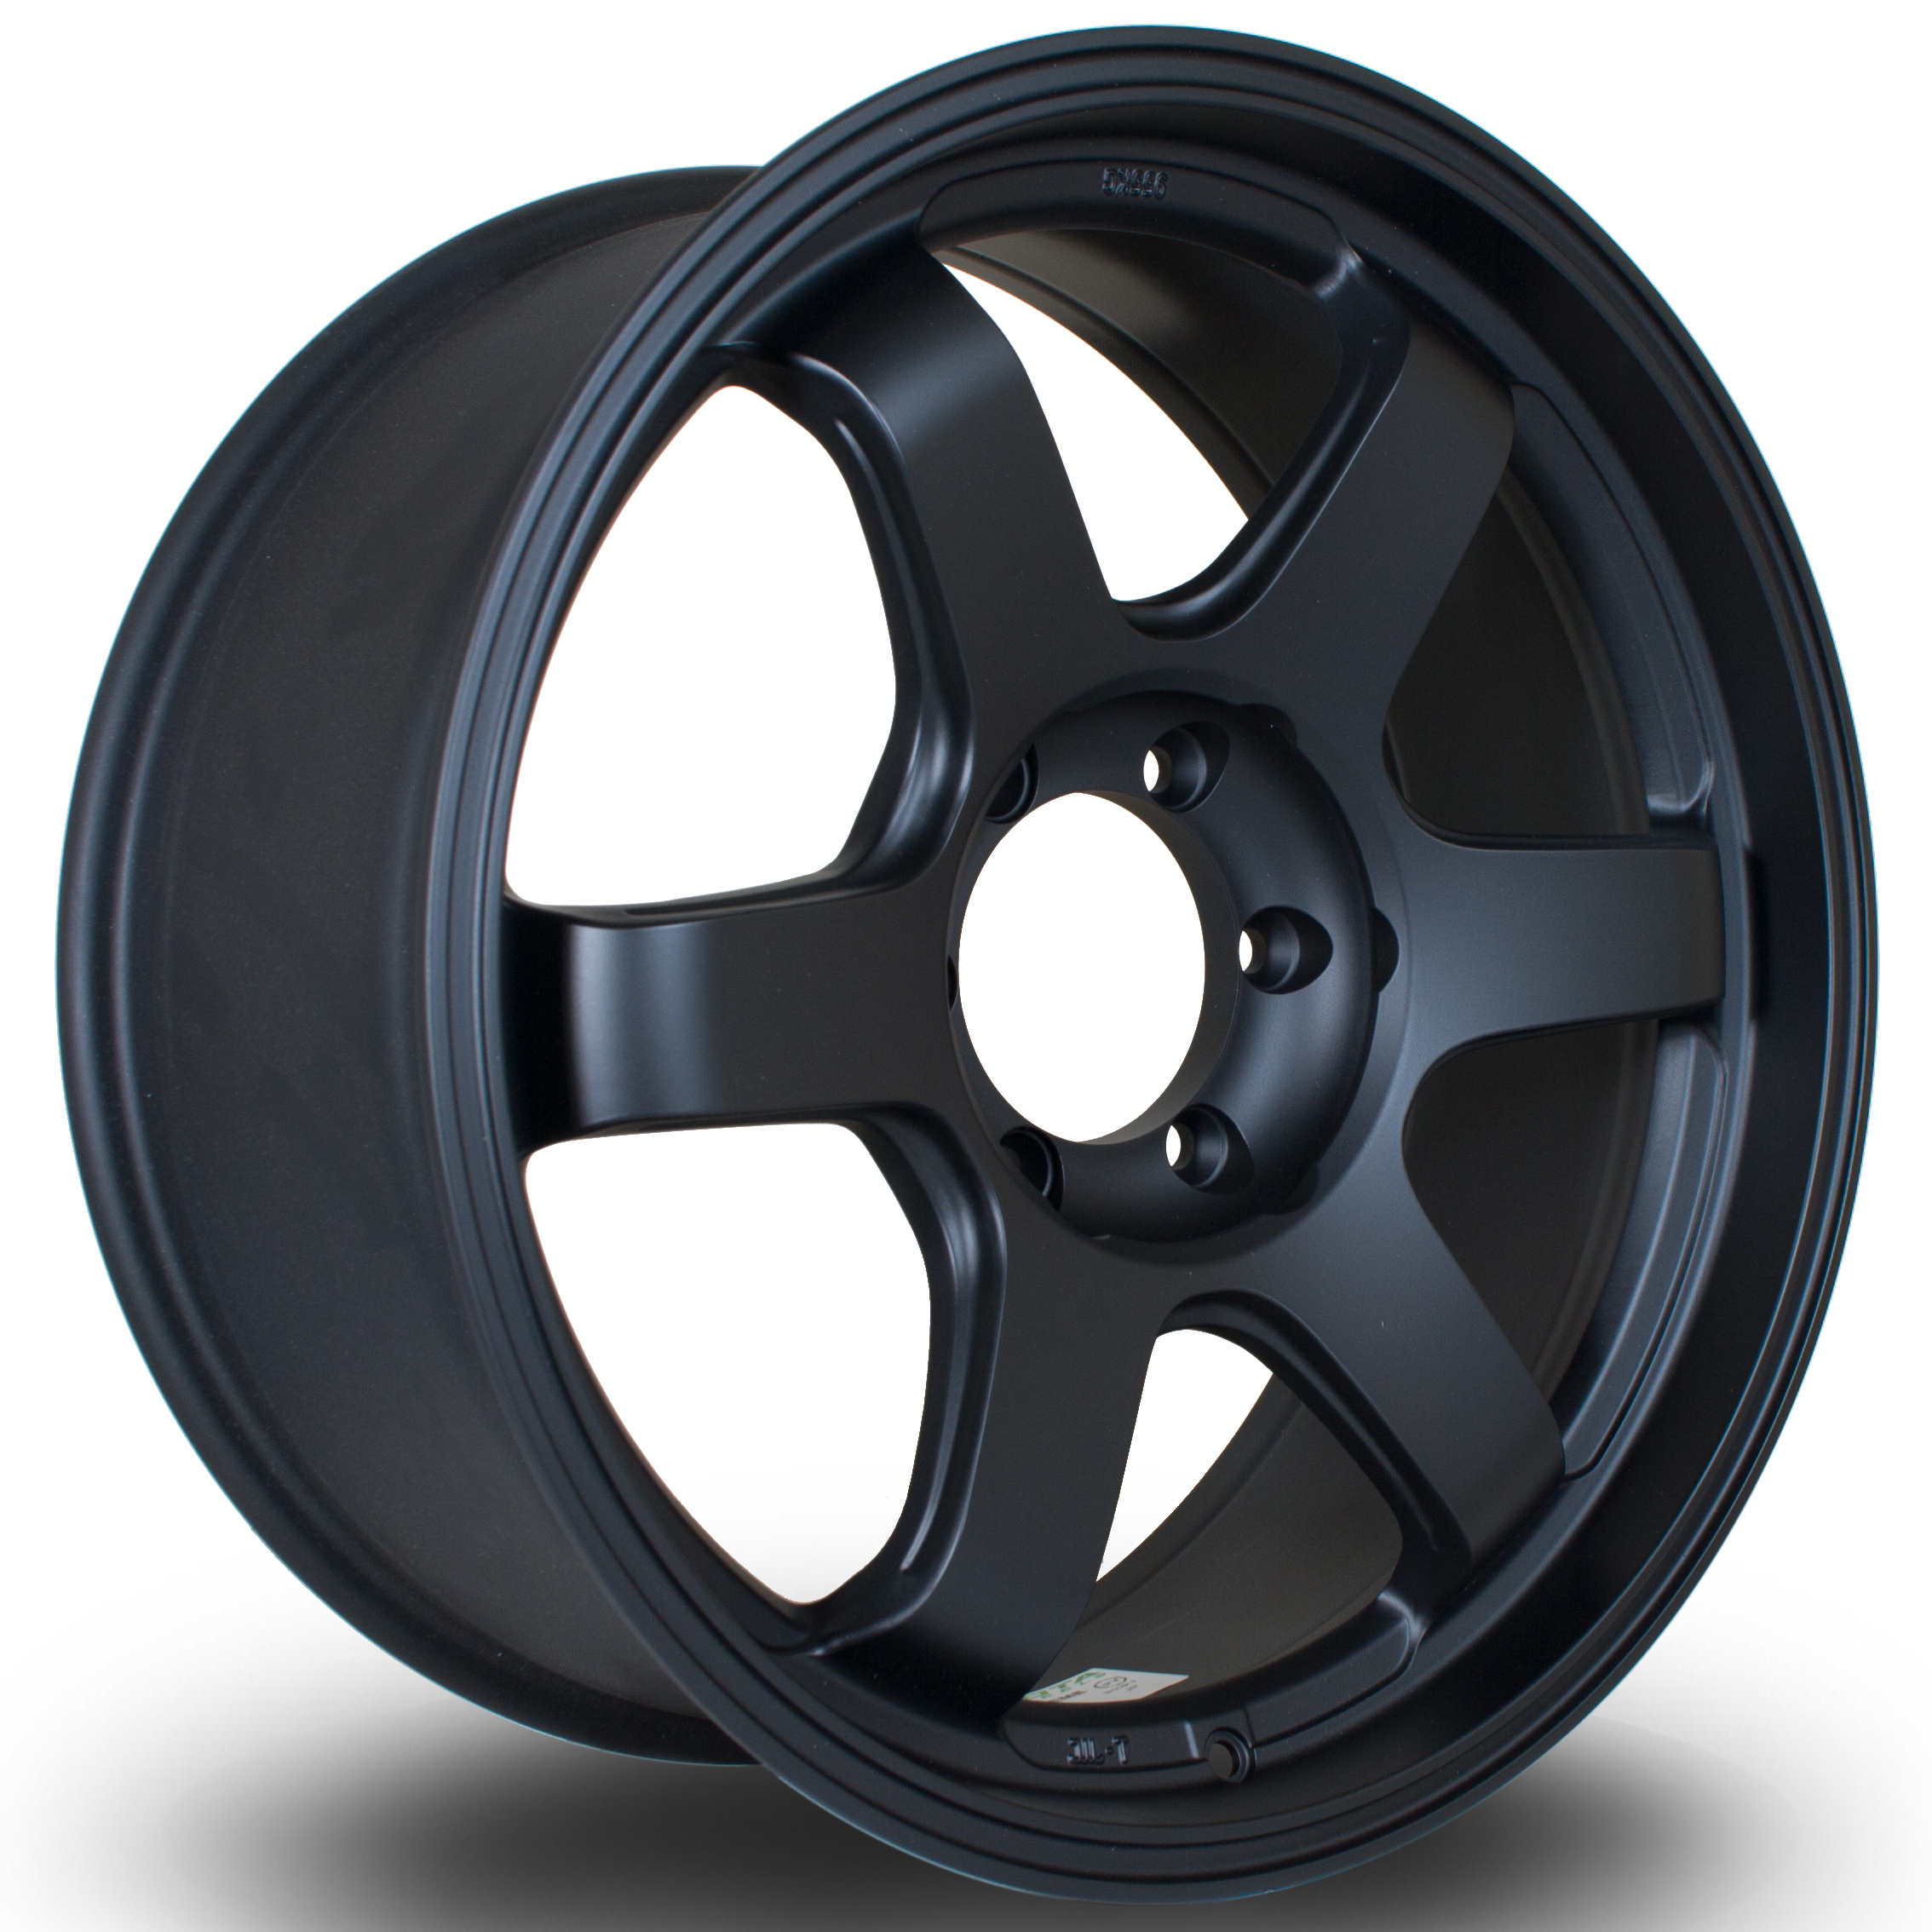 Rota Grid Extreme wheels